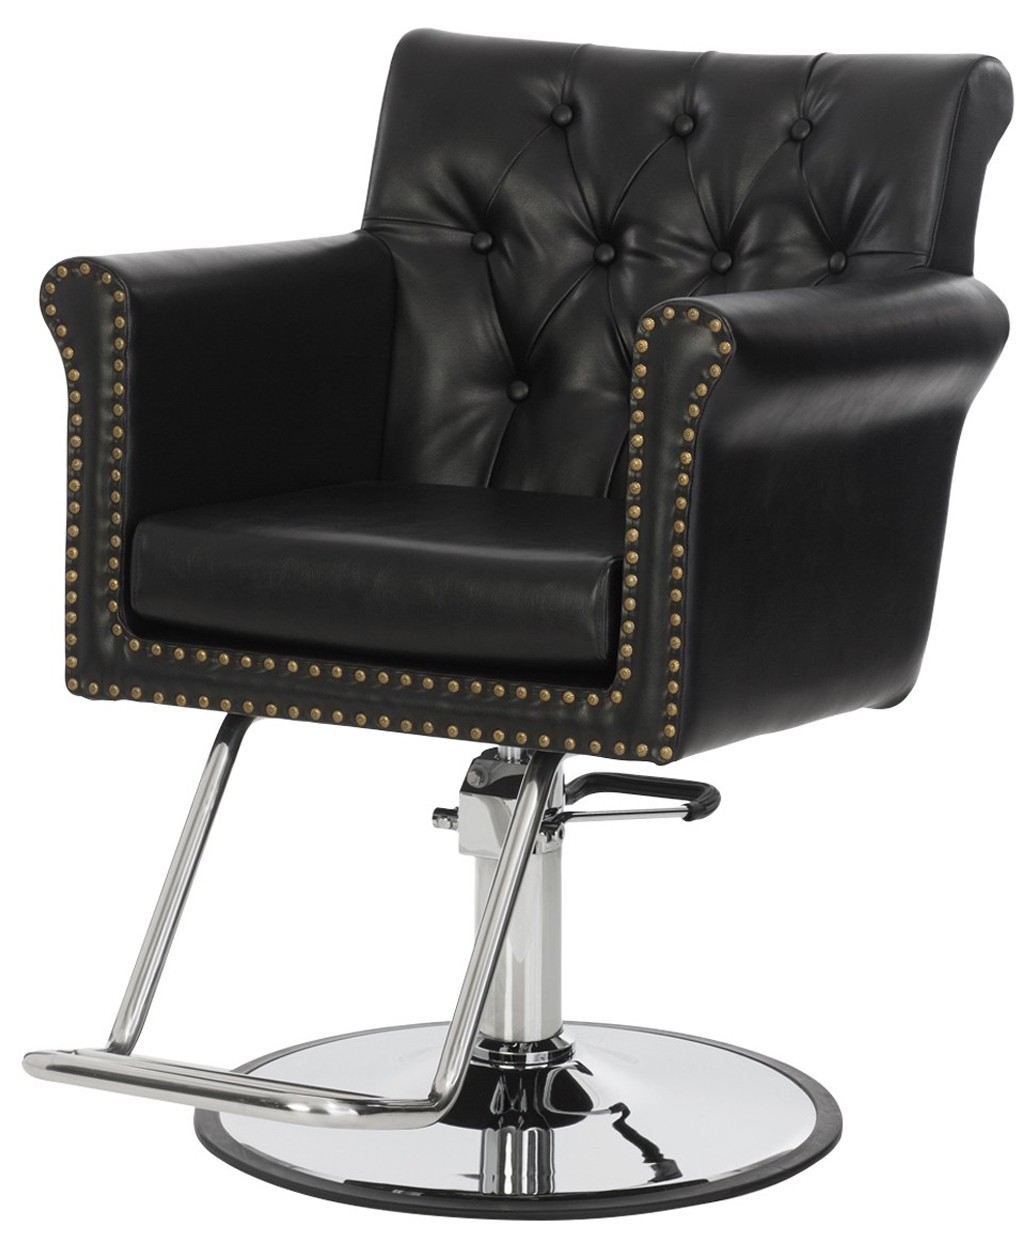 4 Operator Chelsea & Allegro Salon Package Chelsea Styling Chair